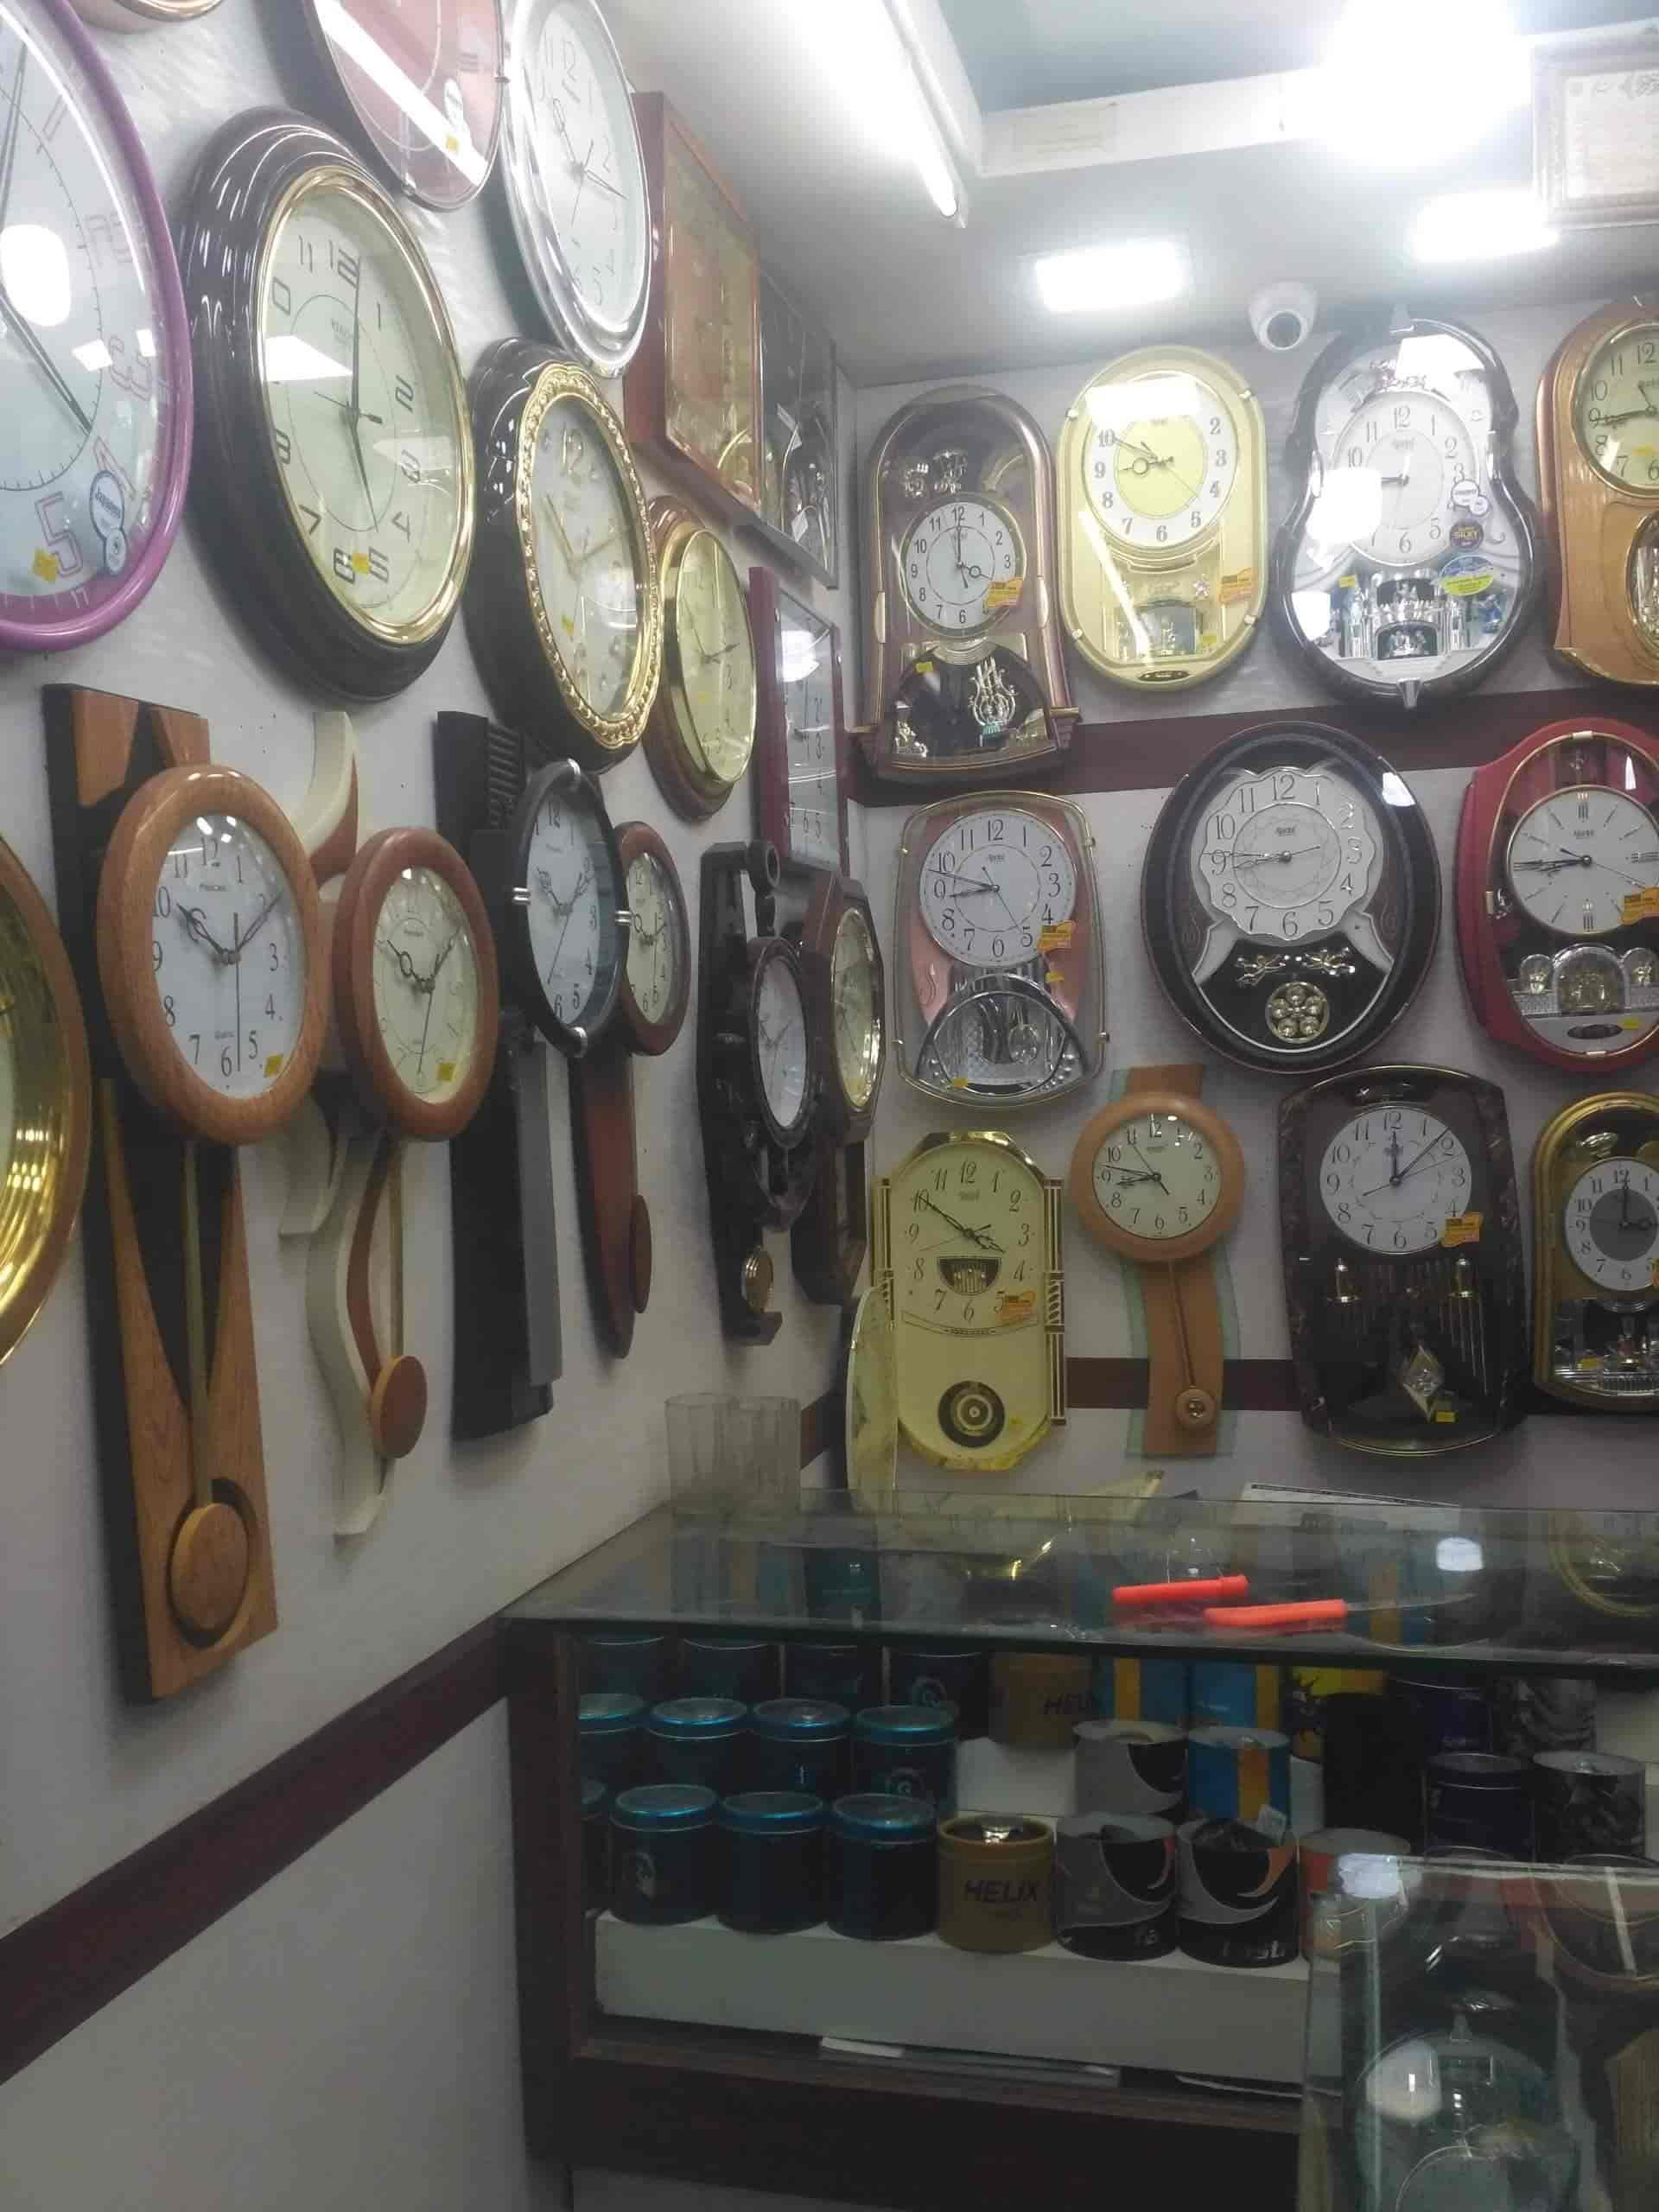 afdf3d7c1b6 ROLEX WATCH Photos, Main Road, Ranchi- Pictures & Images Gallery ...